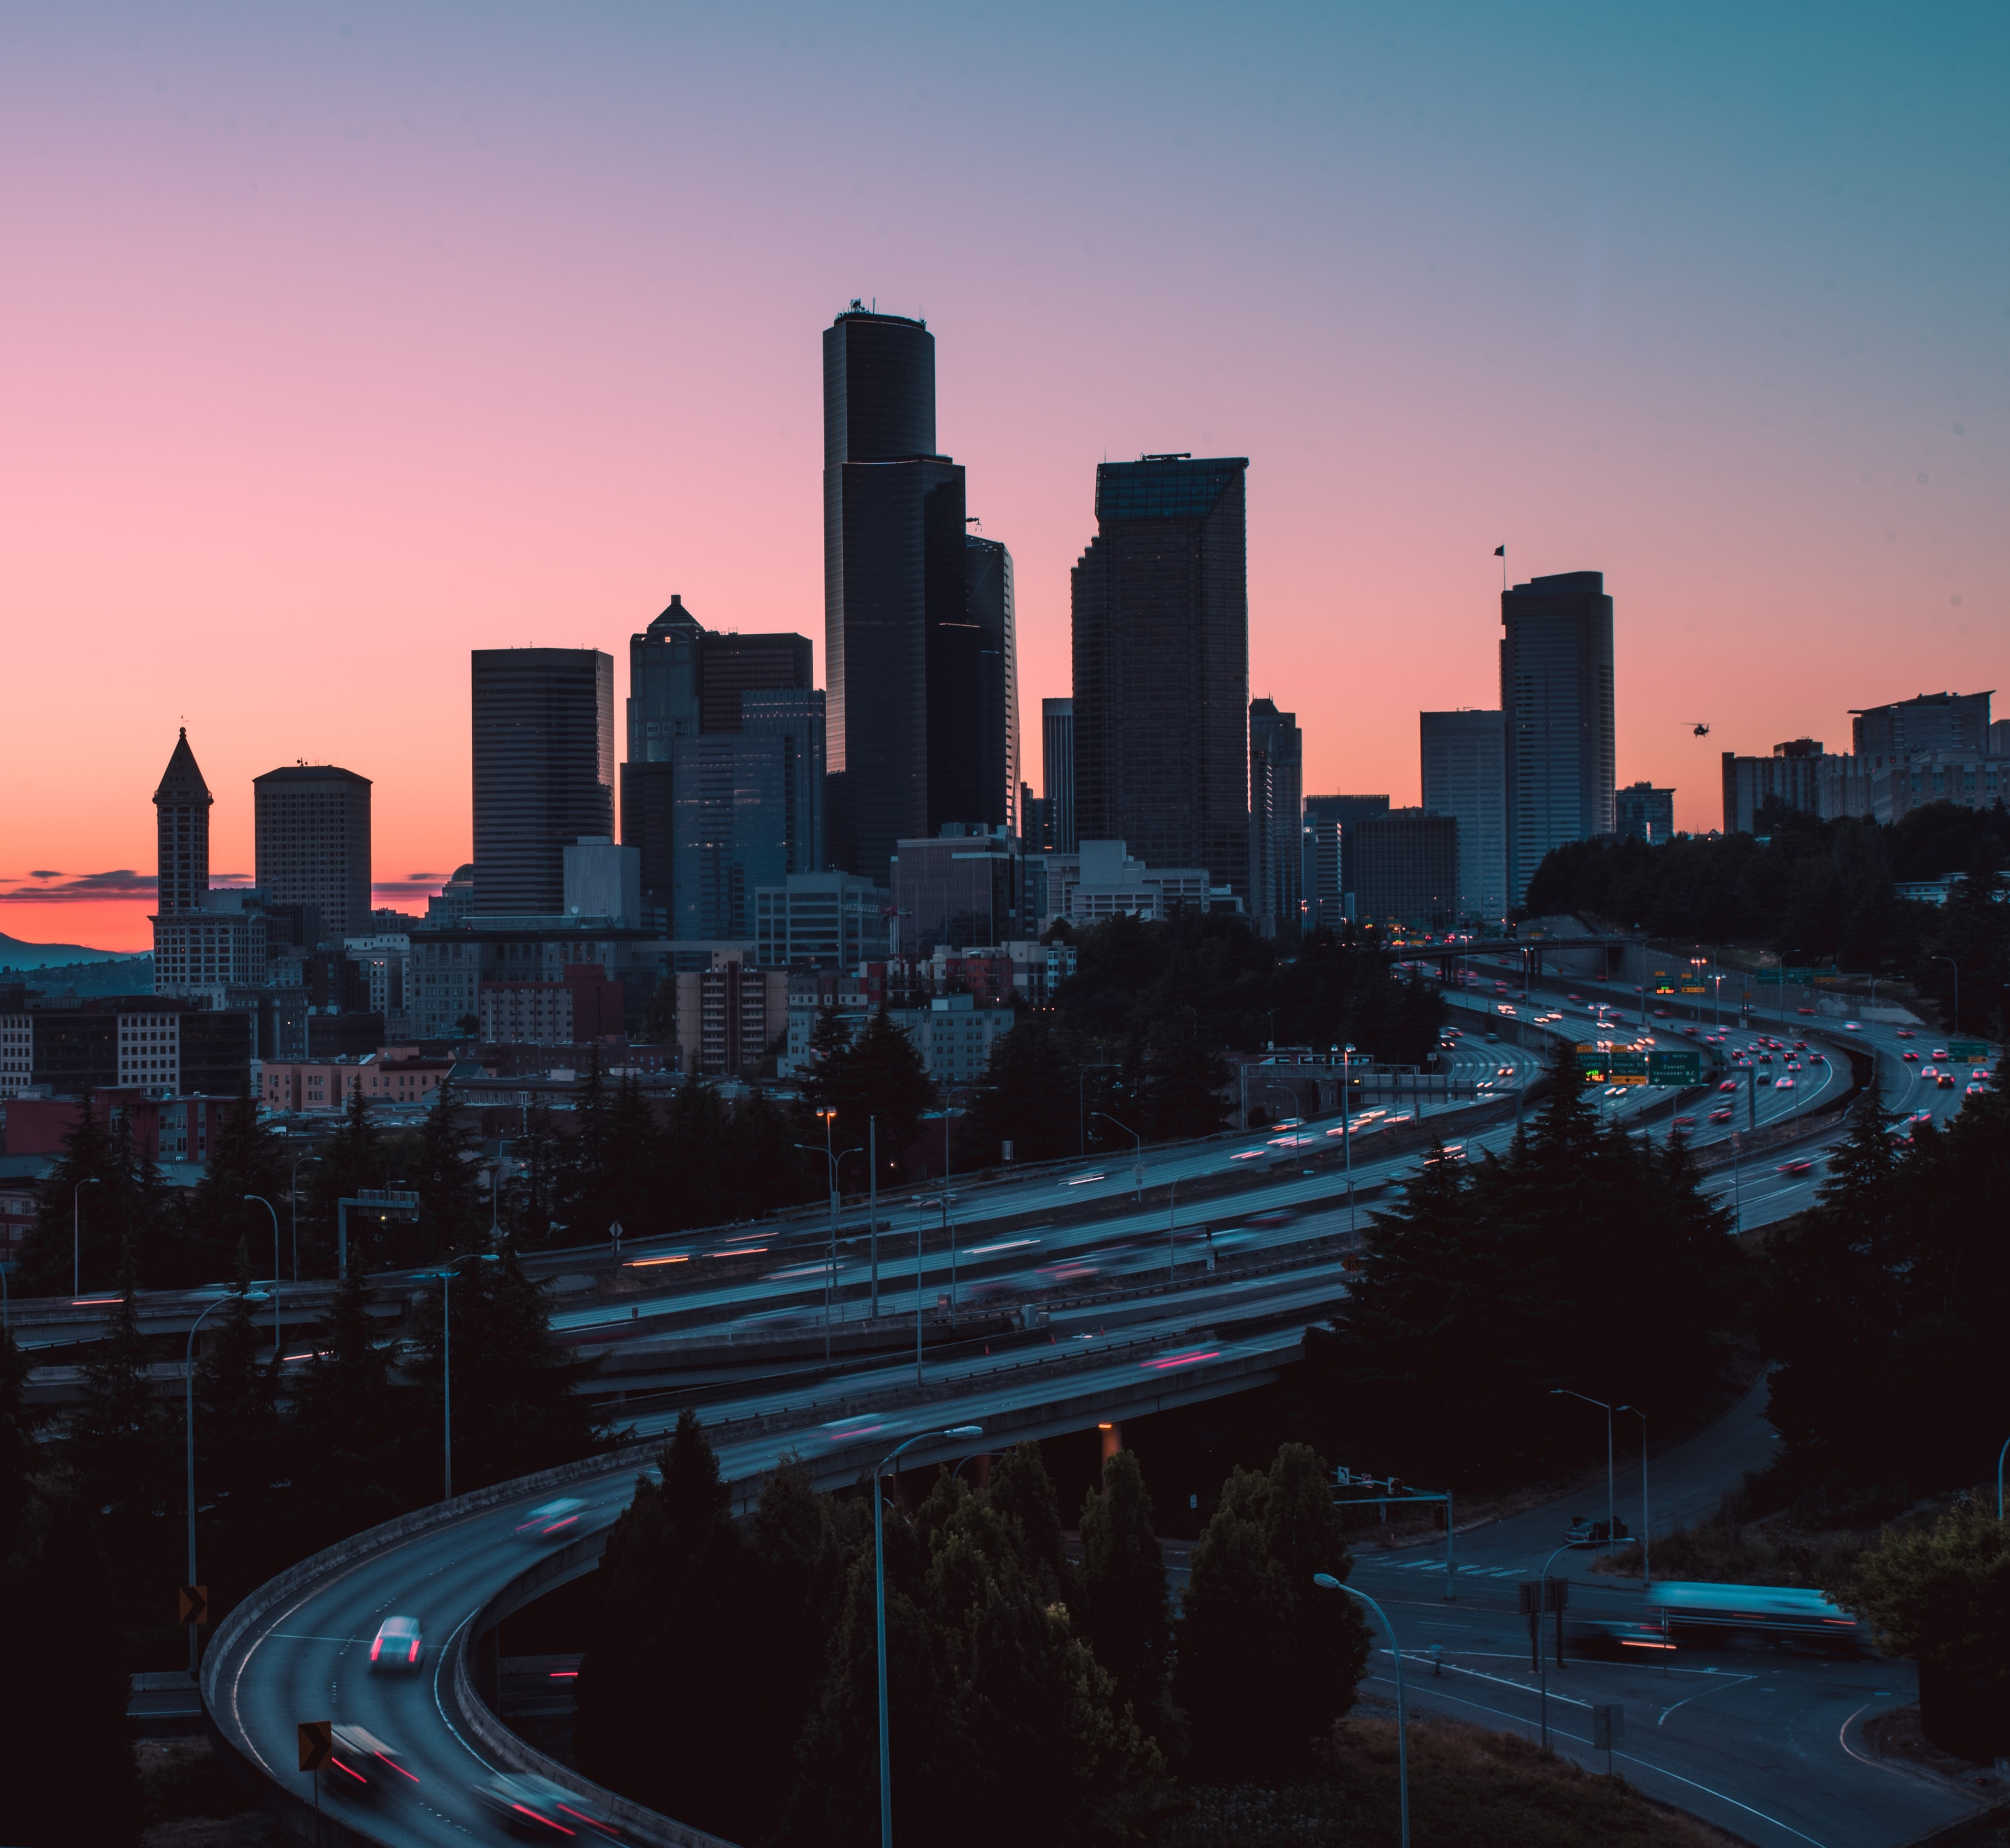 silhouette of highway and buildings